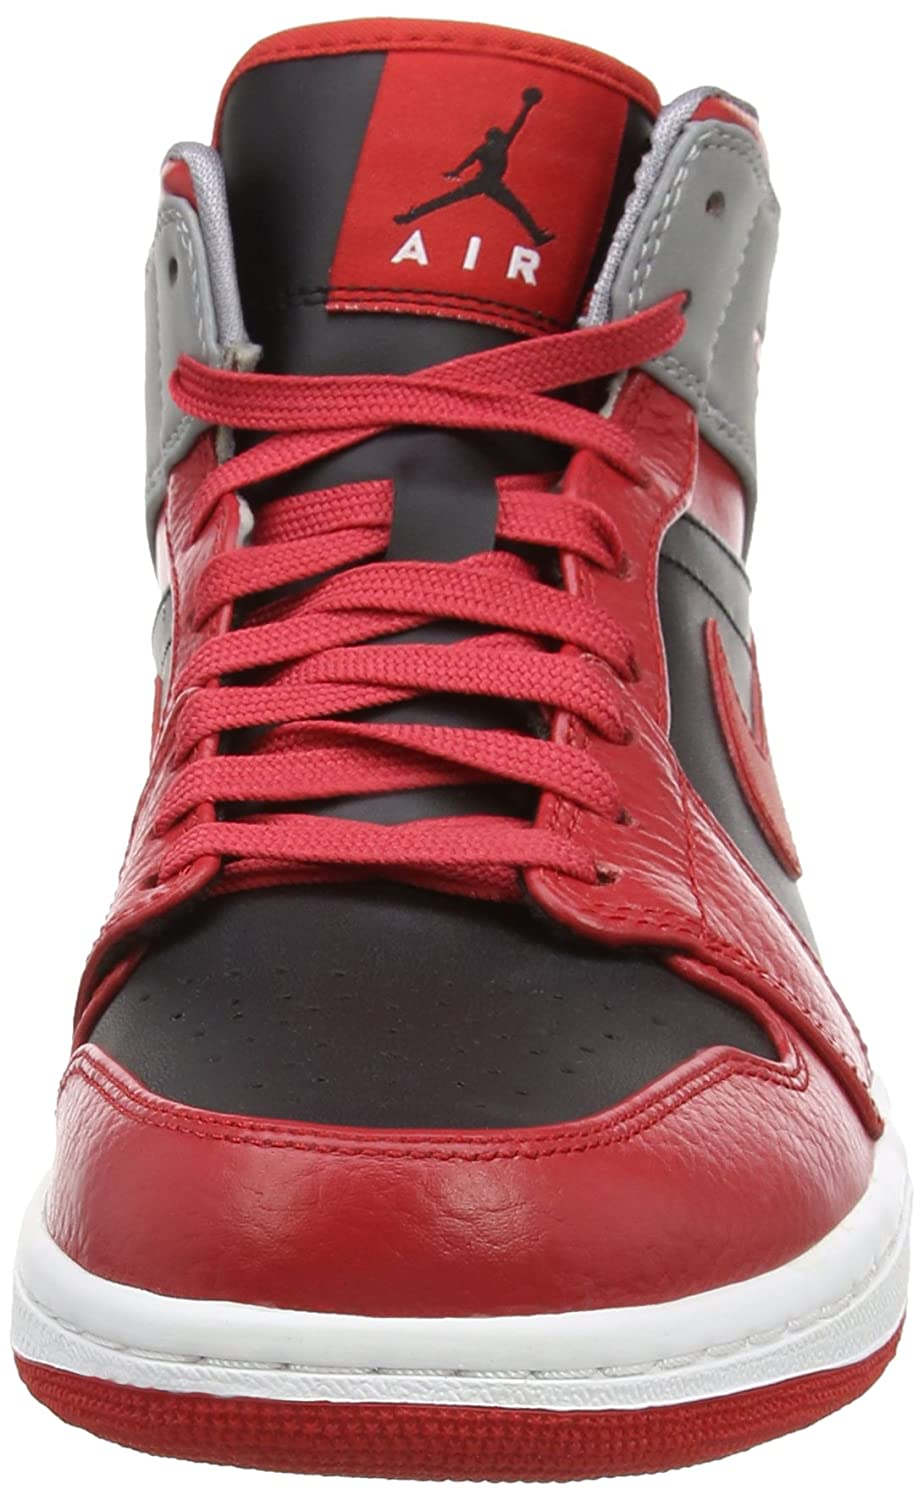 Nike AIR JORDAN 1 MID 554724-603-42 - 8.5 Rouge: Amazon.co.uk: Shoes & Bags